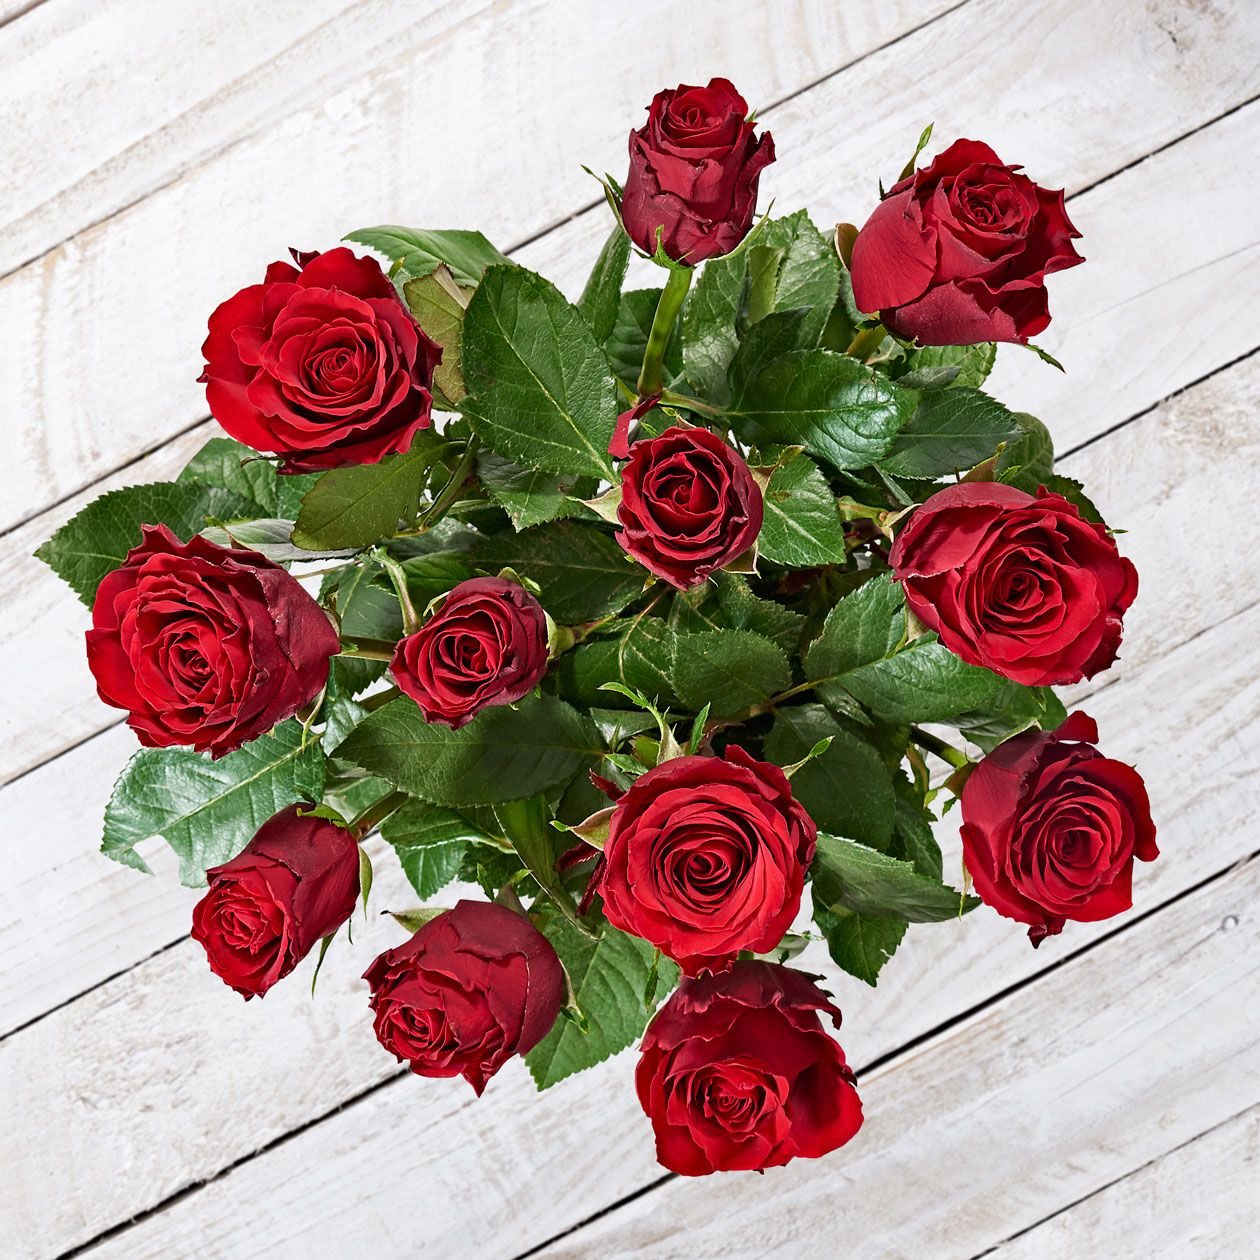 Merlot Buy These Dozen Beautiful Red Roses To Say Je T Aime To